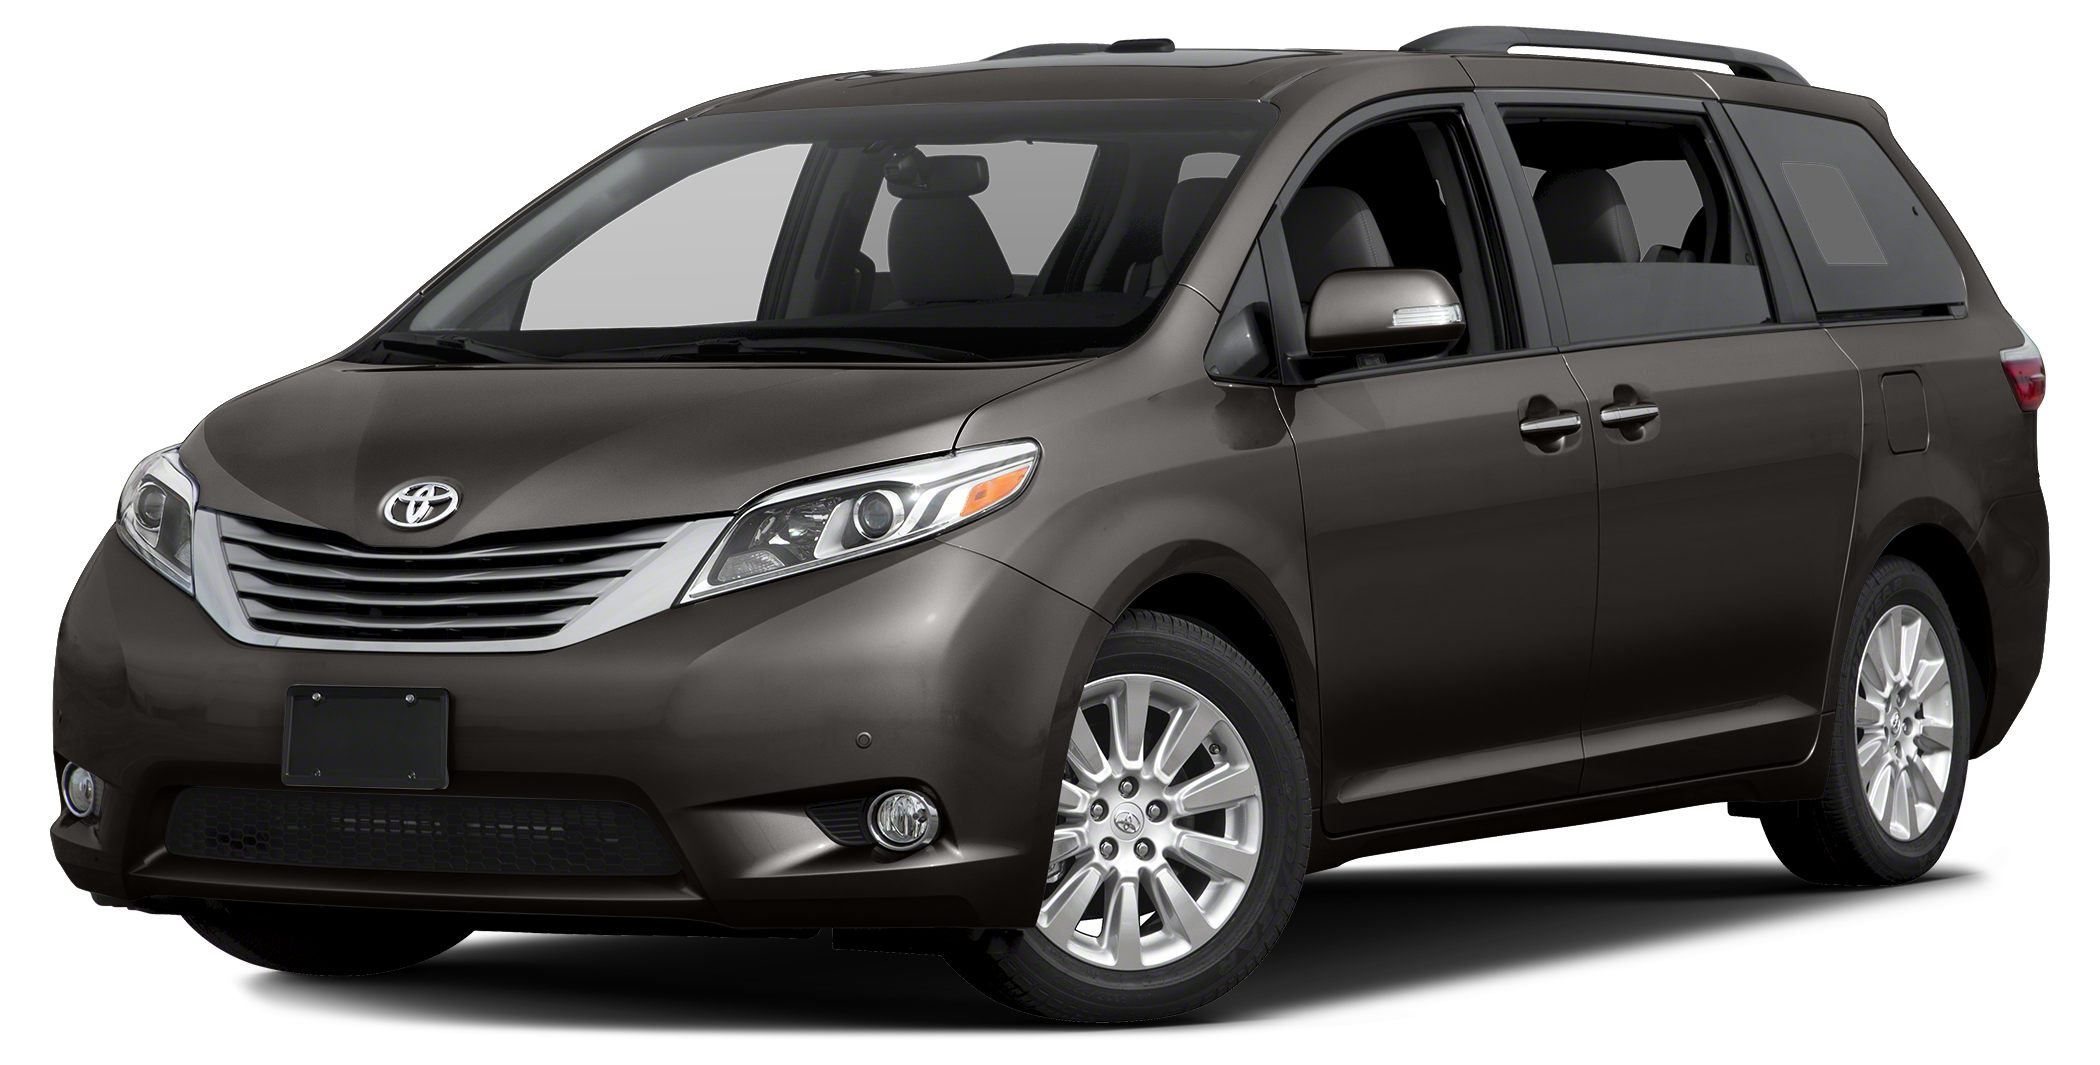 dodge grand caravan gt vs honda odyssey touring vs kia sedona sxl vs toyota sienna limited 7 places. Black Bedroom Furniture Sets. Home Design Ideas